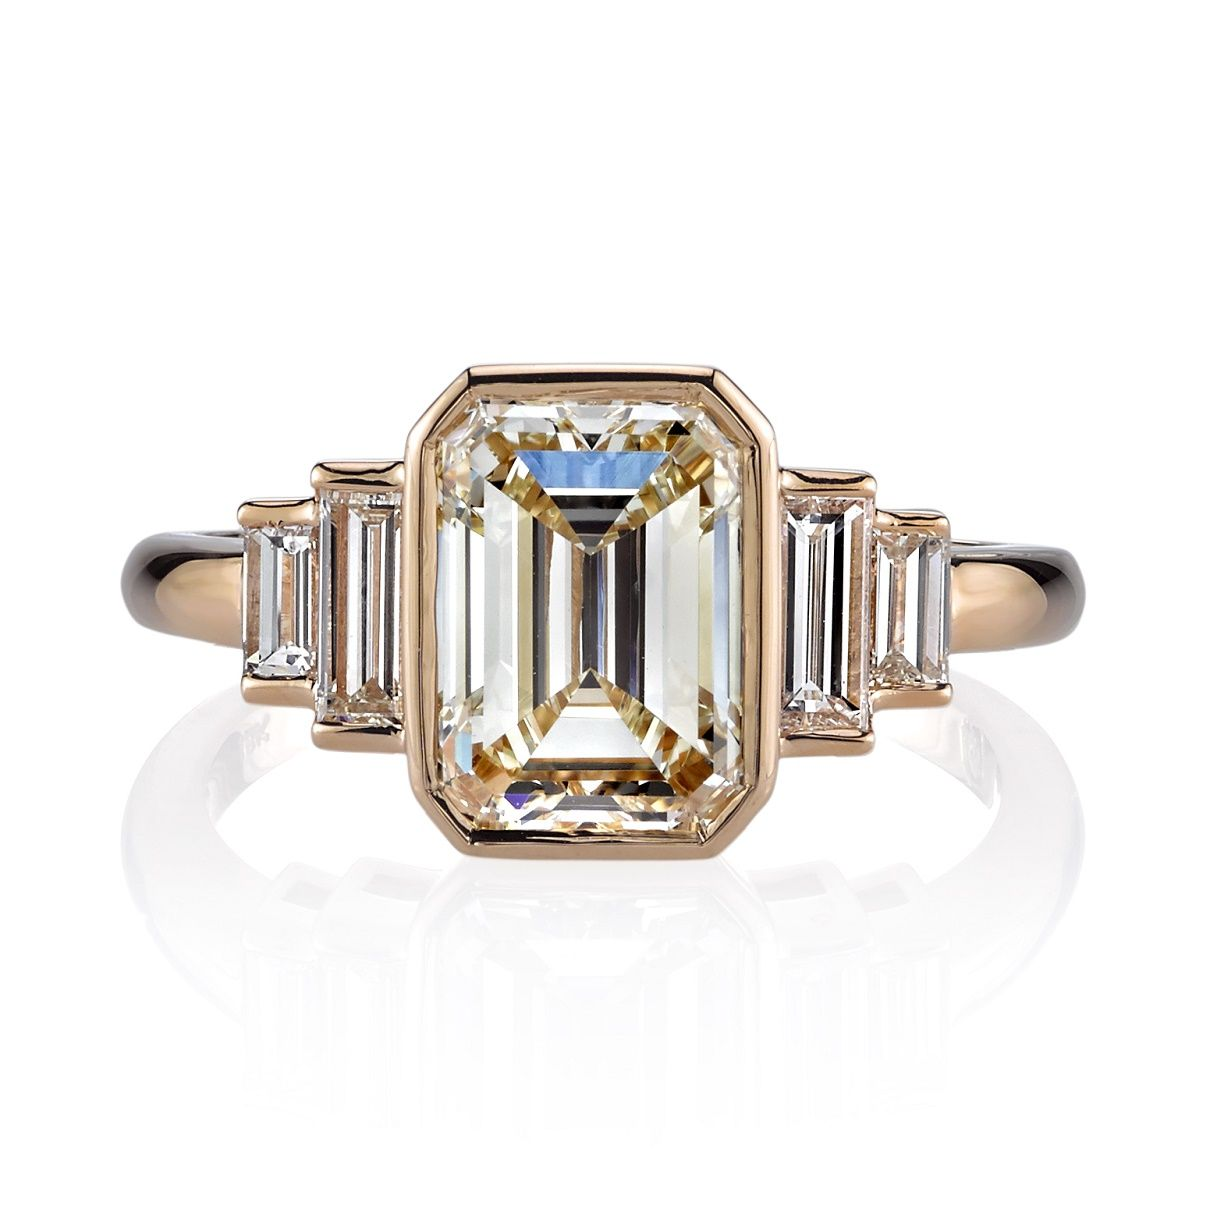 29 Emerald Cut Engagement Rings To Propose With Emerald Cut Engagement Rings